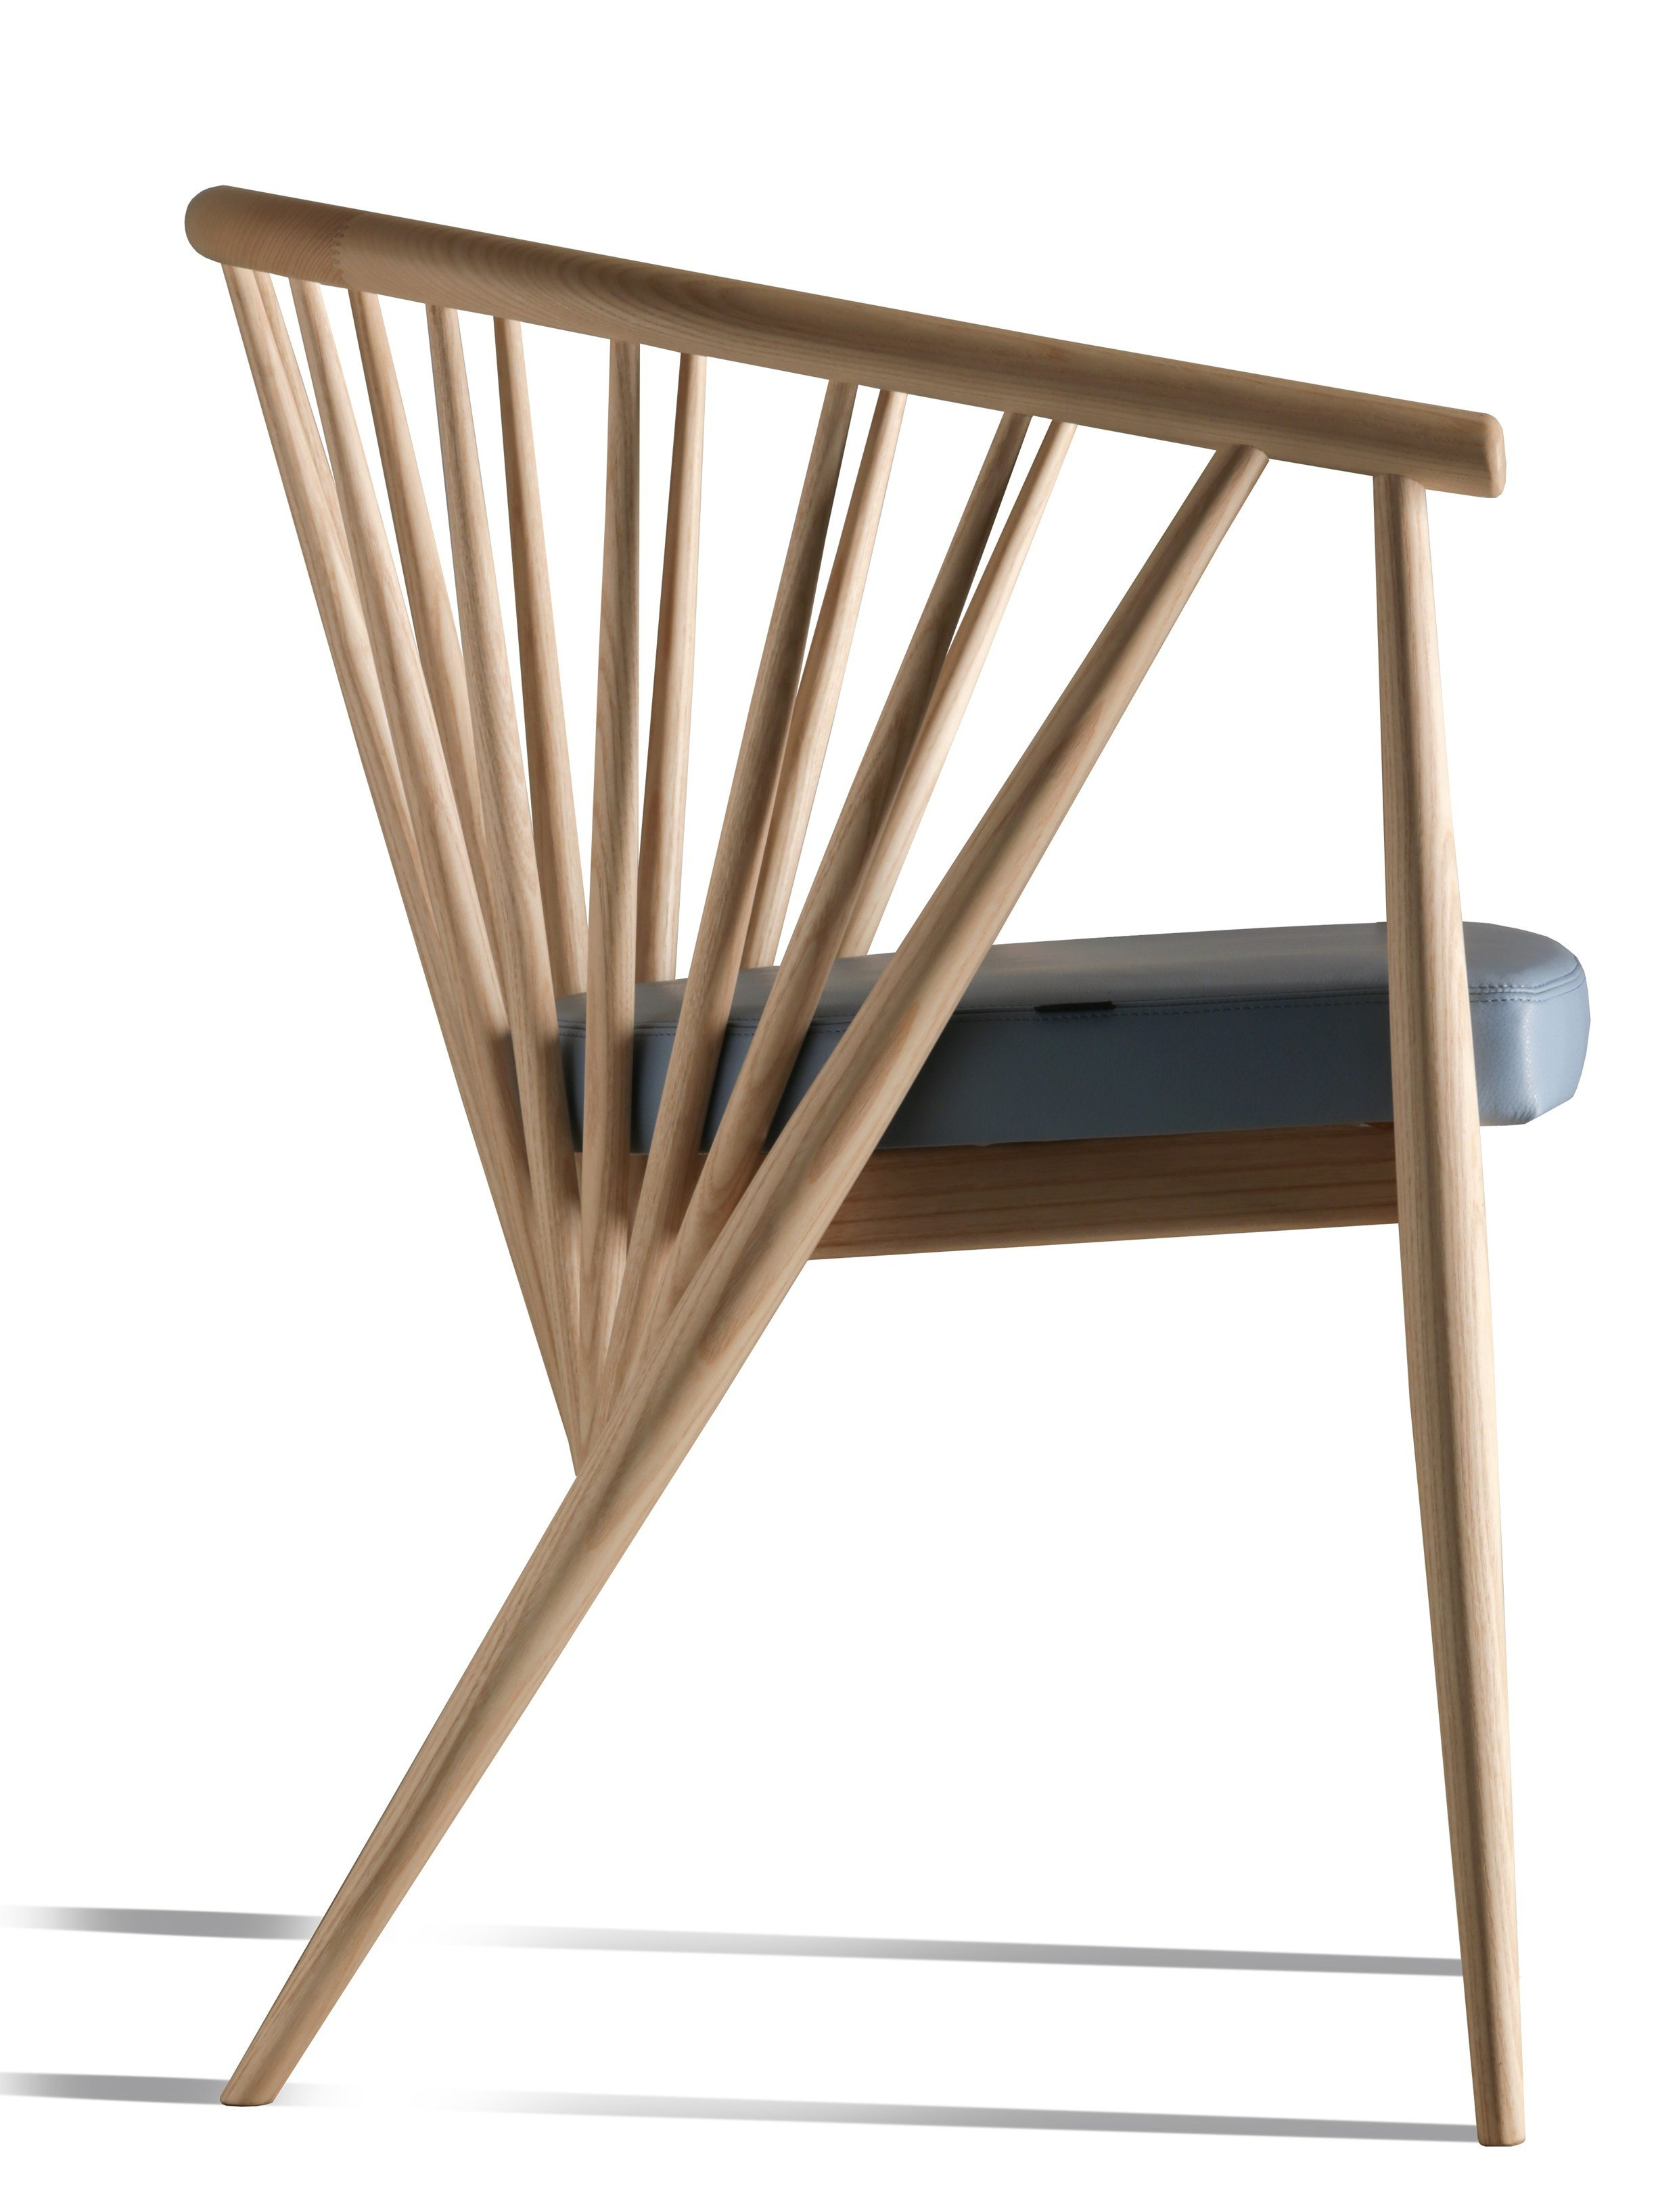 Genny easy chair by morelato design centro ricerche maam for Easy chair designs